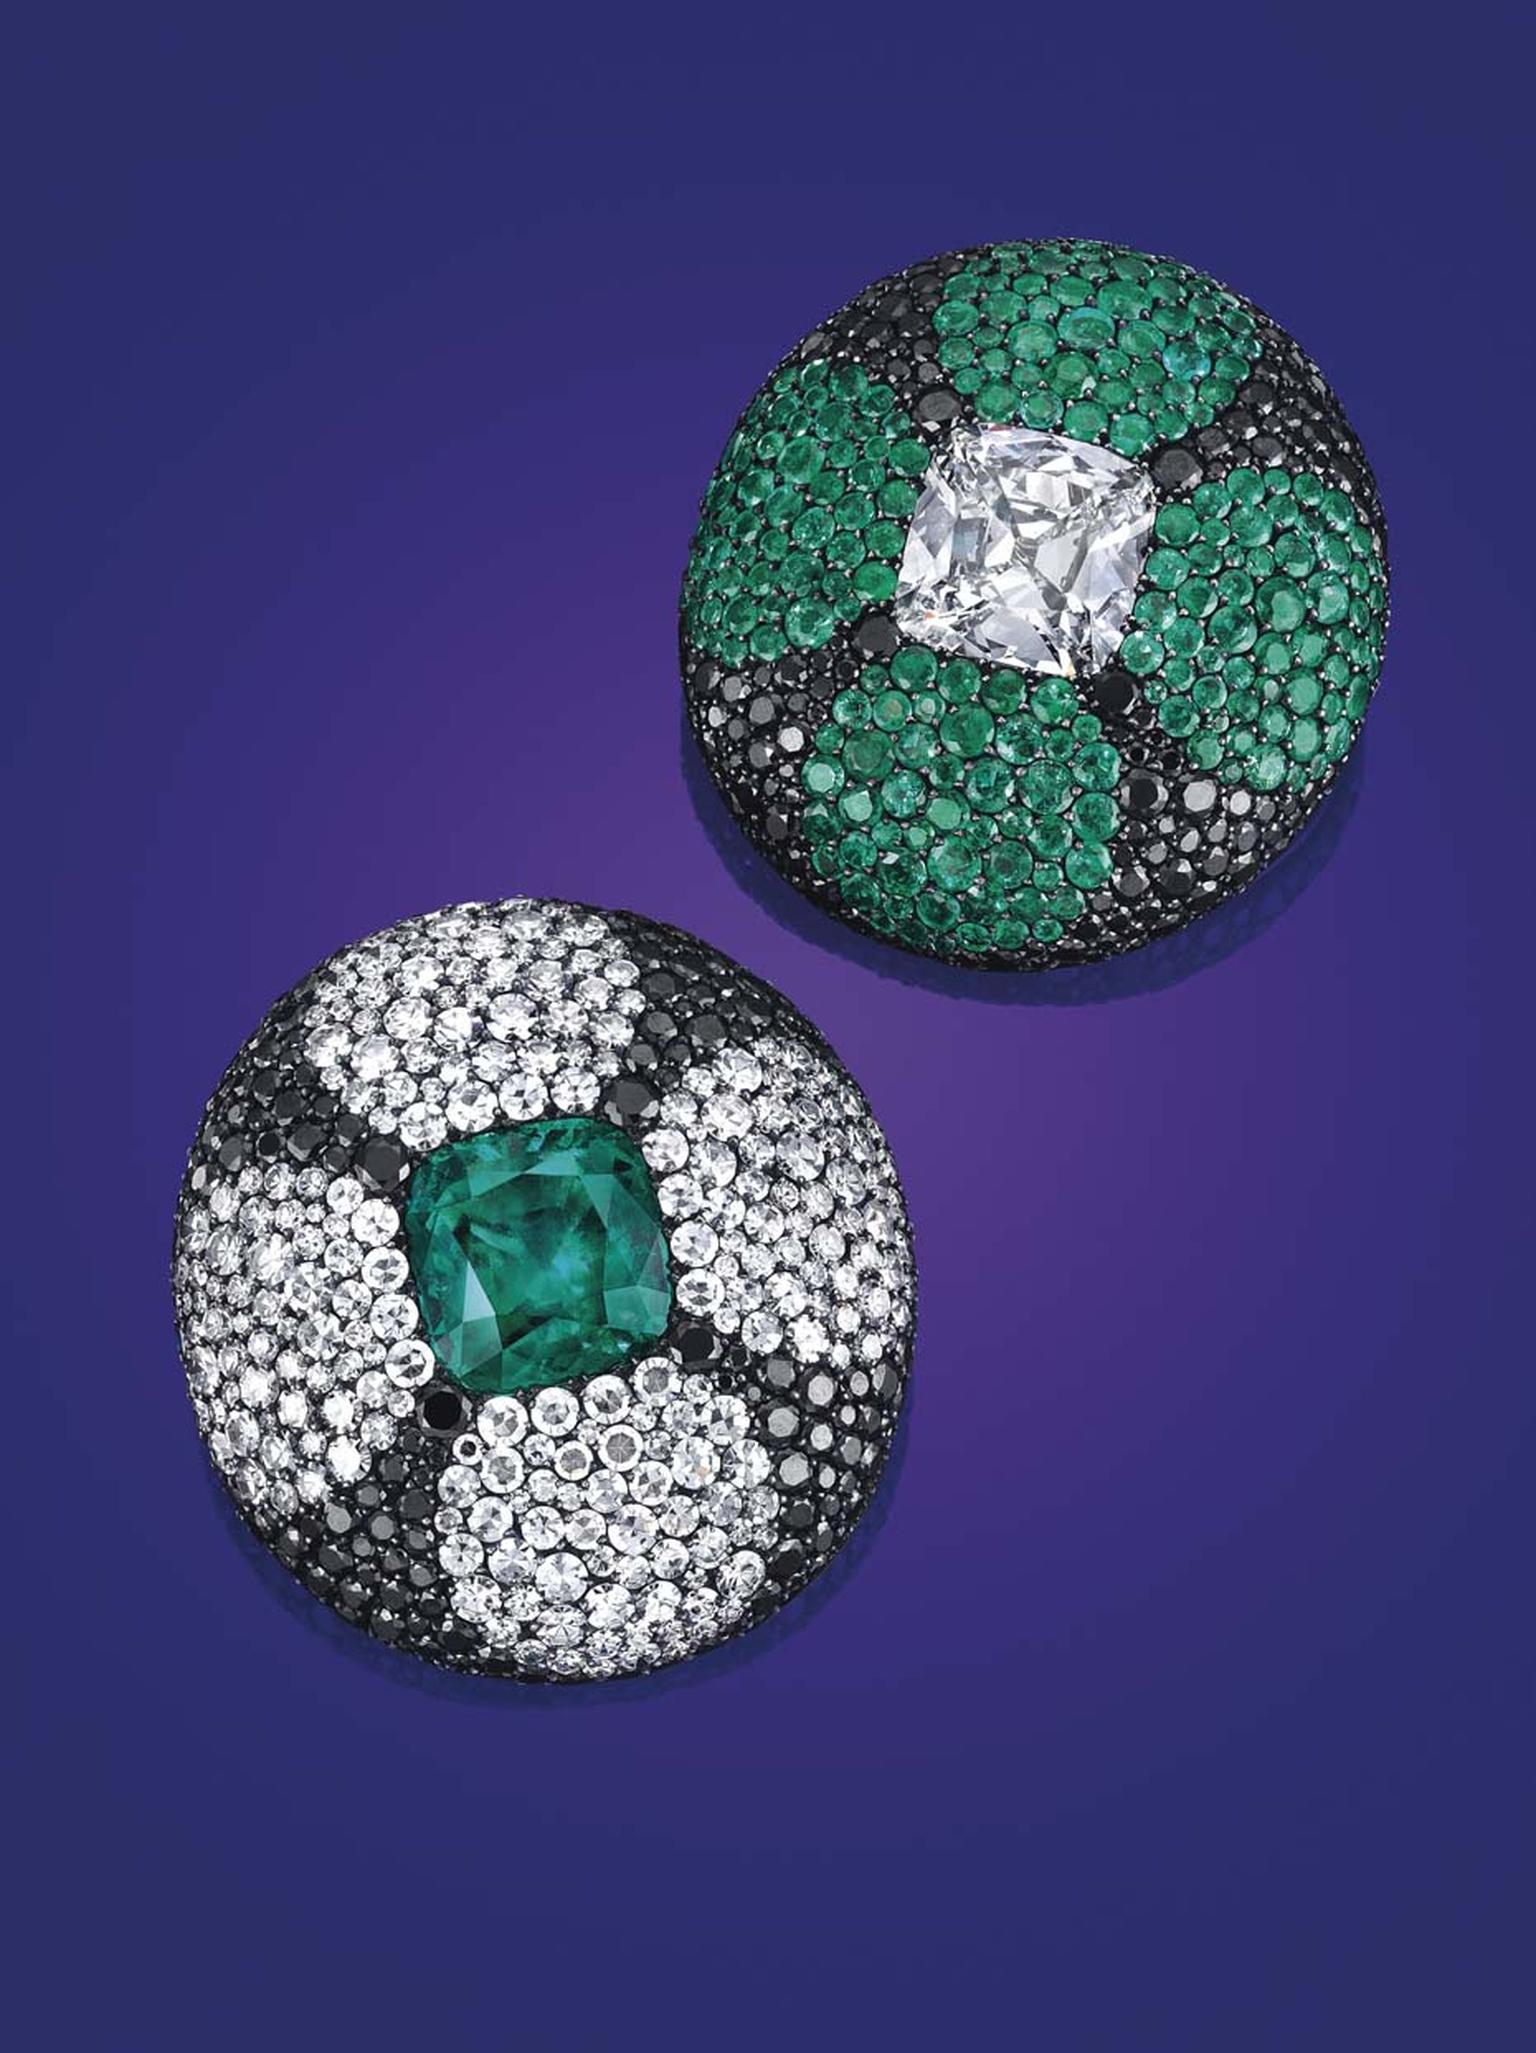 Among the many jewels from collectable jewelry houses to appear at Christie's New York auction of Magnificent Jewels were this pair of emerald, diamond and colored diamond ear clips by JAR, which sold for $845,000 - more than doubling its pre-sale estimat